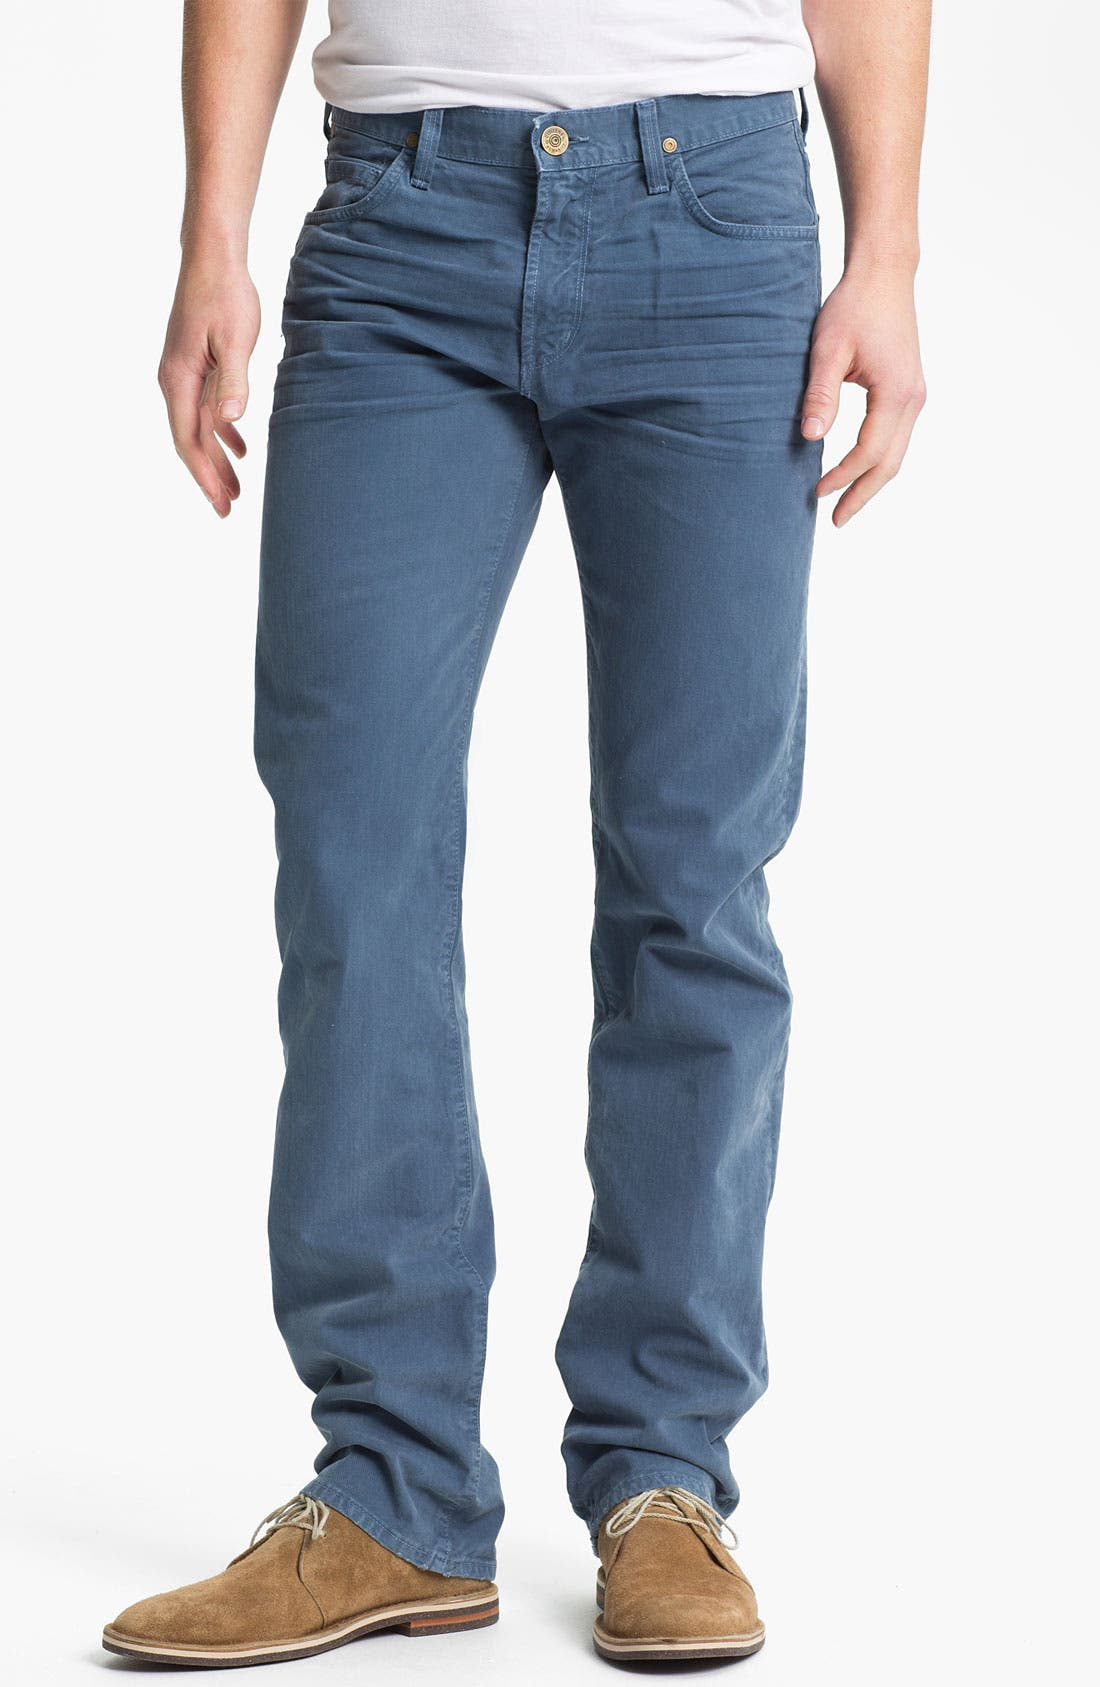 Alternate Image 1 Selected - Citizens of Humanity 'Sid' Straight Leg Jeans (Spruce) (Online Only)